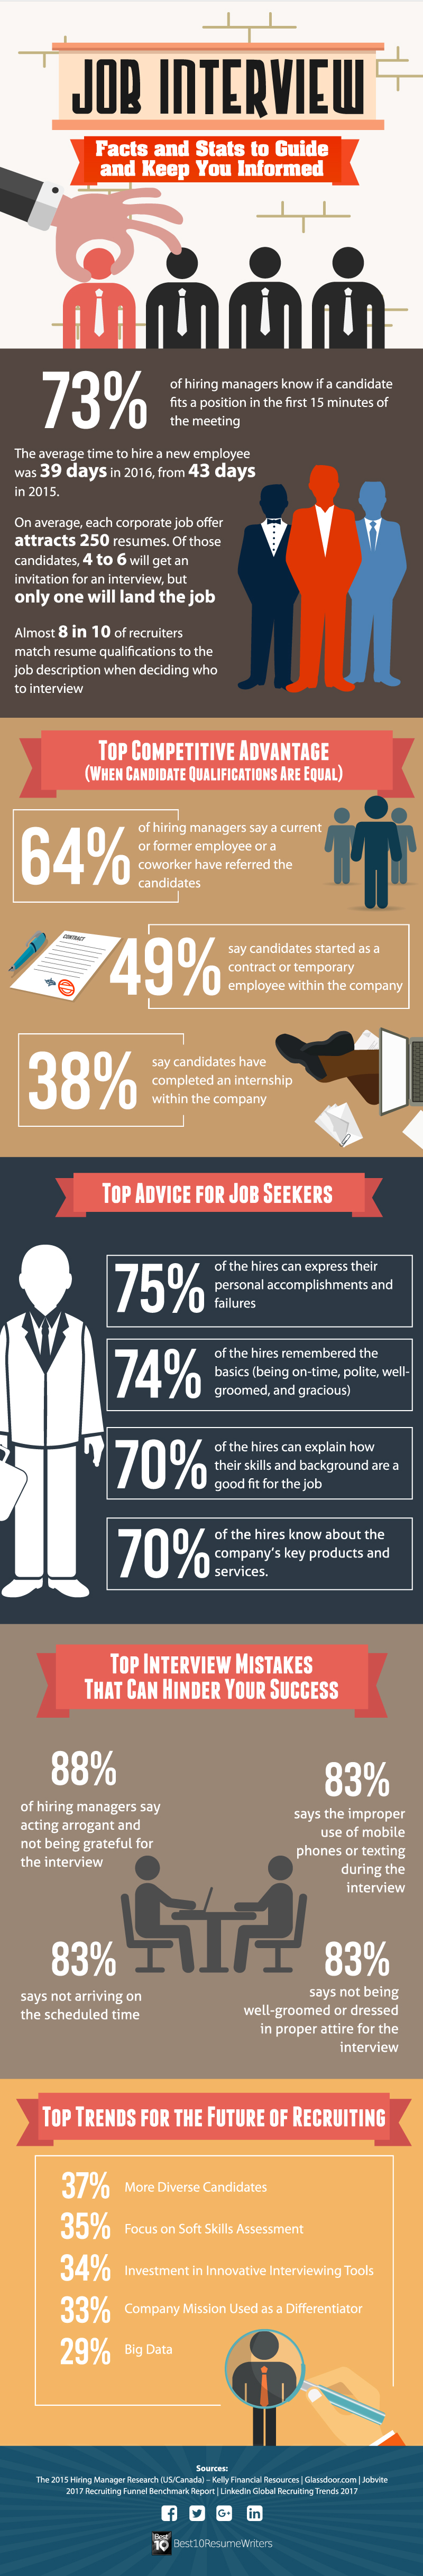 Nice Job Interview Facts And Stats   Best10ResumeWriters